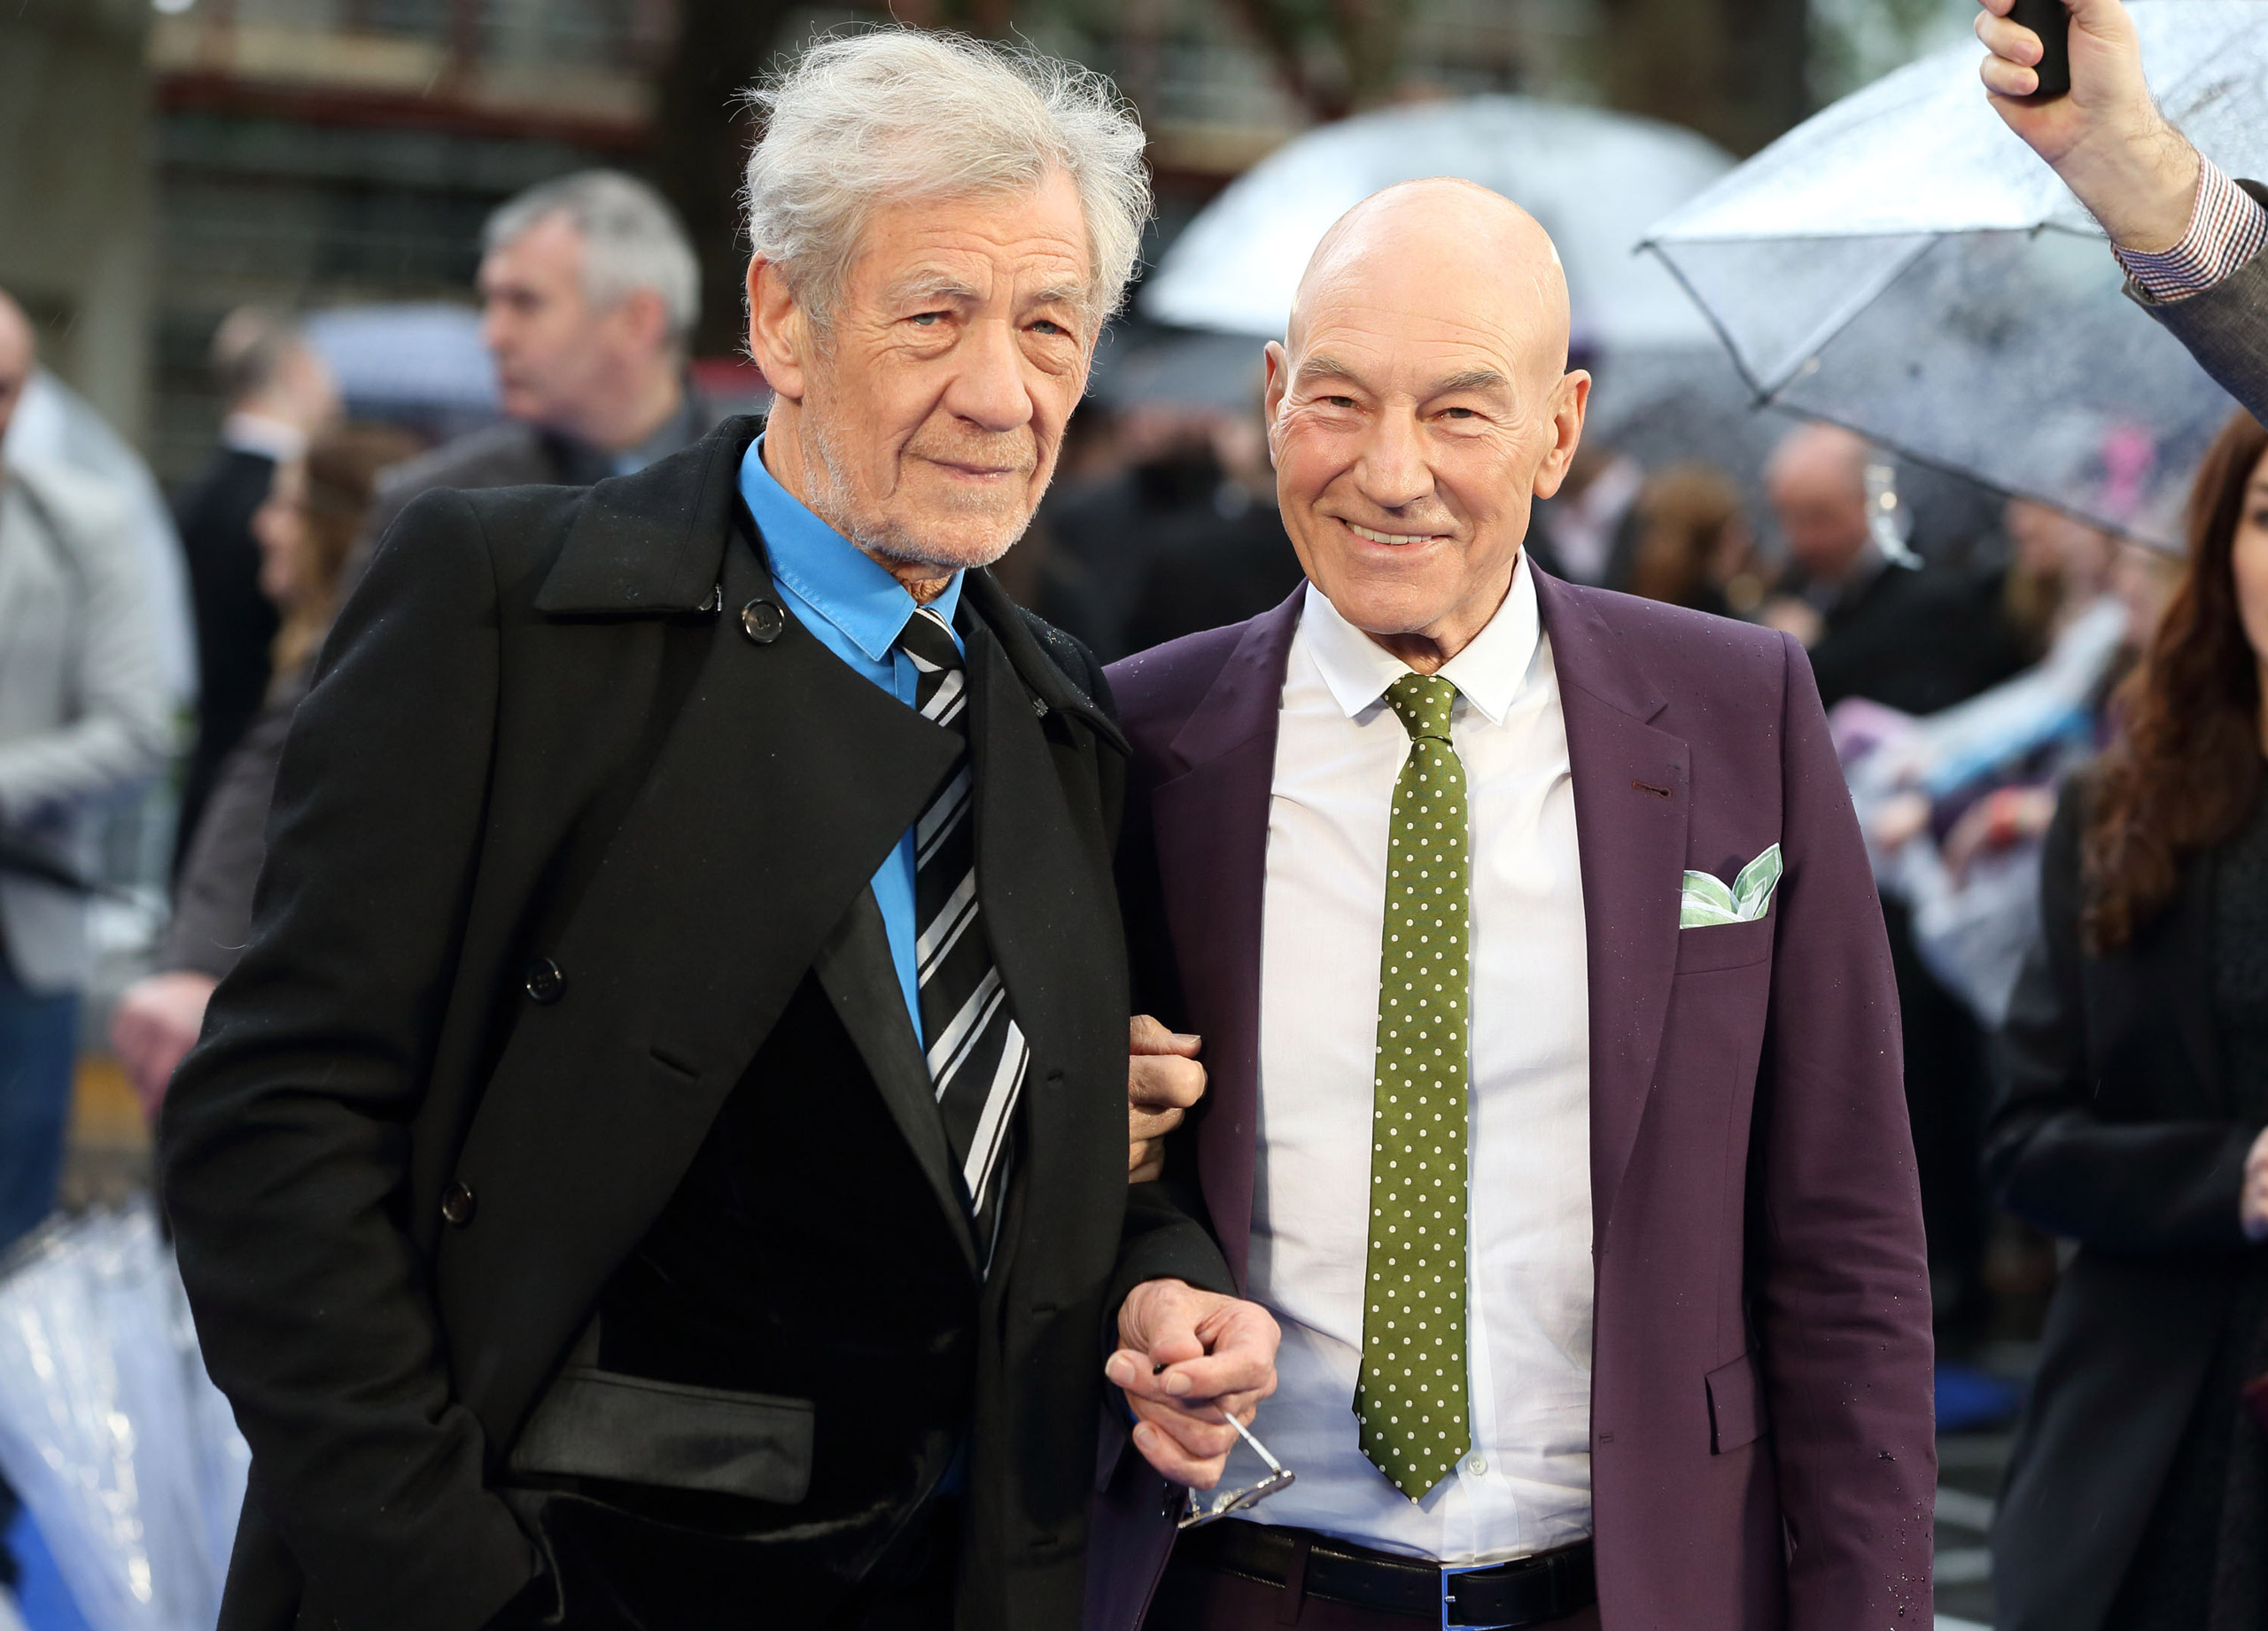 Sir Ian McKellen and Patrick Stewart attend the UK Premiere of  X-Men: Days of Future Past  at Odeon Leicester Square in London on May 12, 2014.